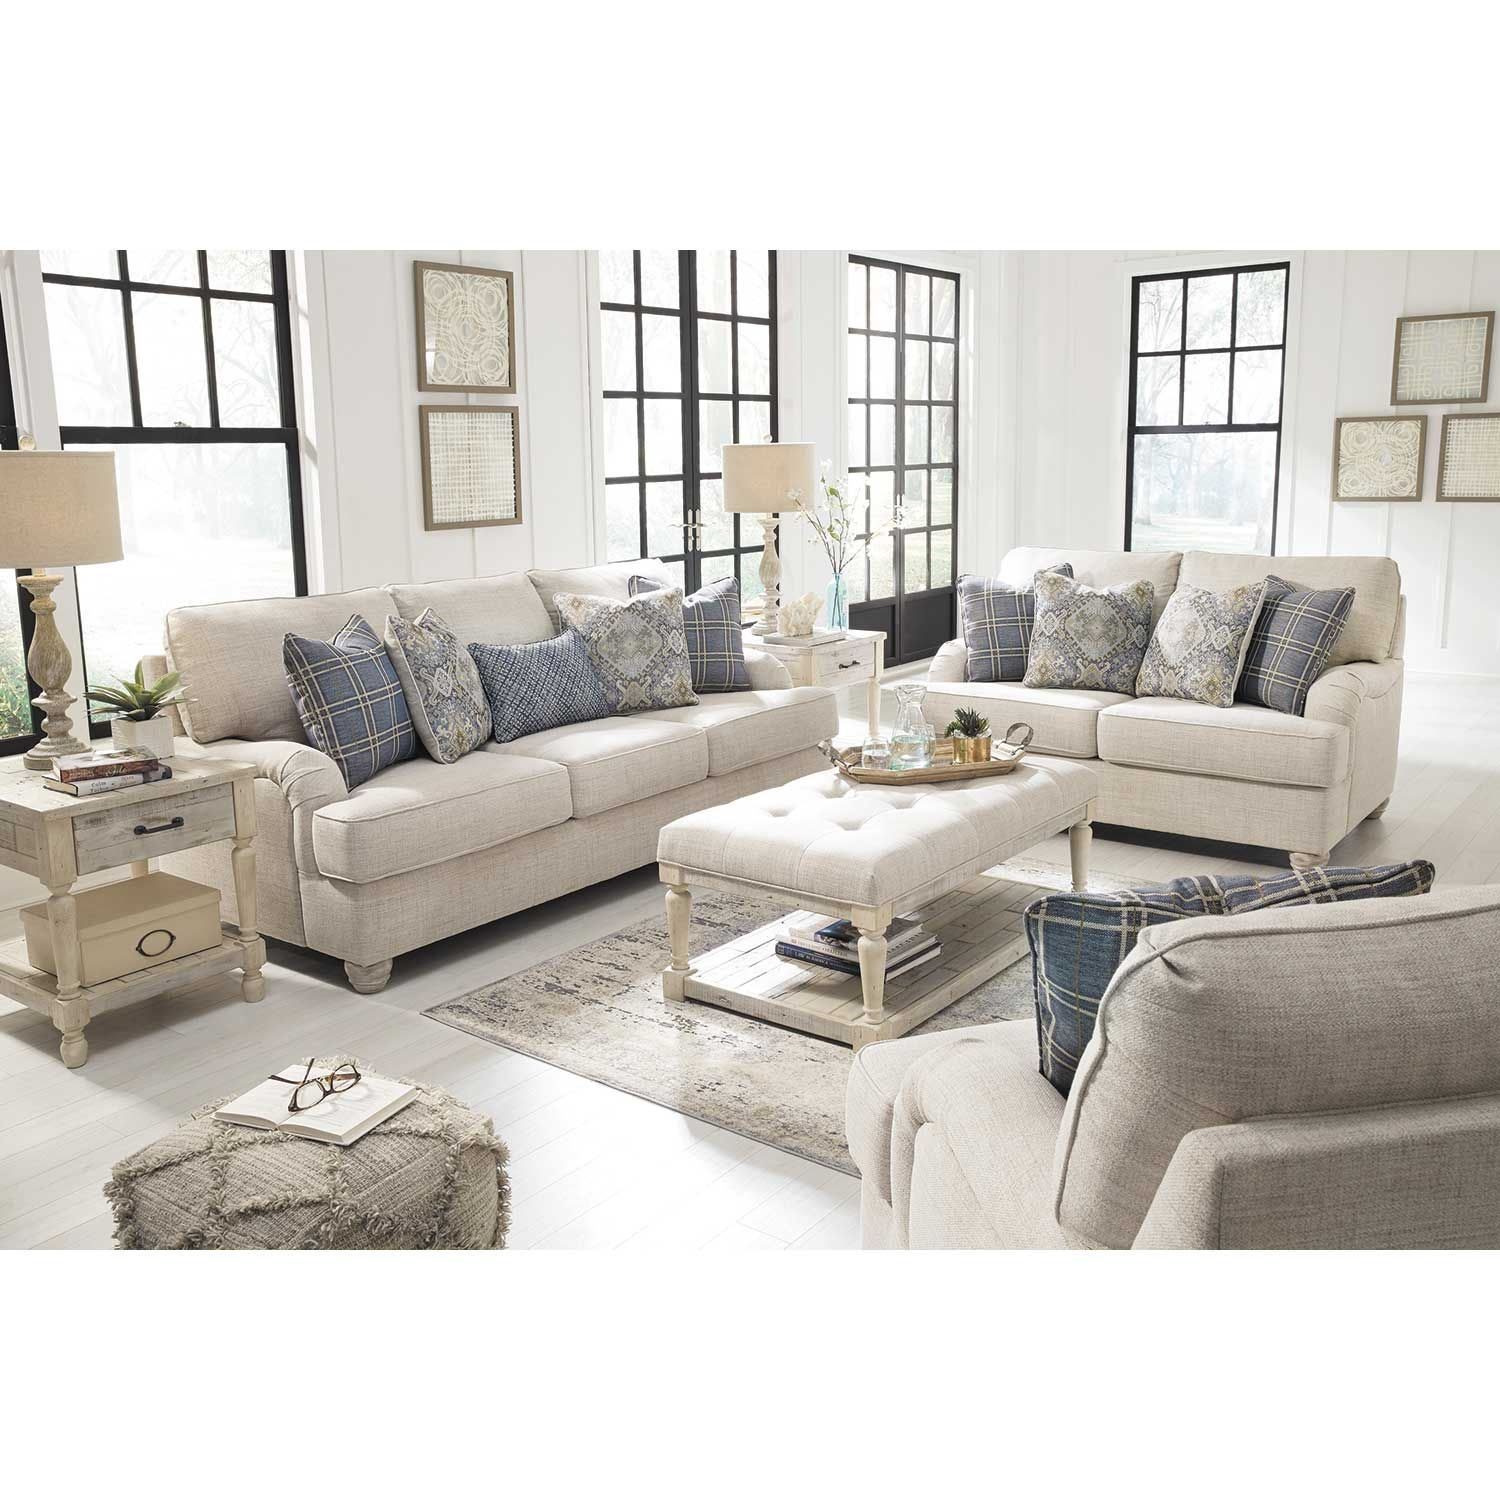 ashley furniture ballari linen sofa smith brothers leather traemore loveseat 2740335 afw